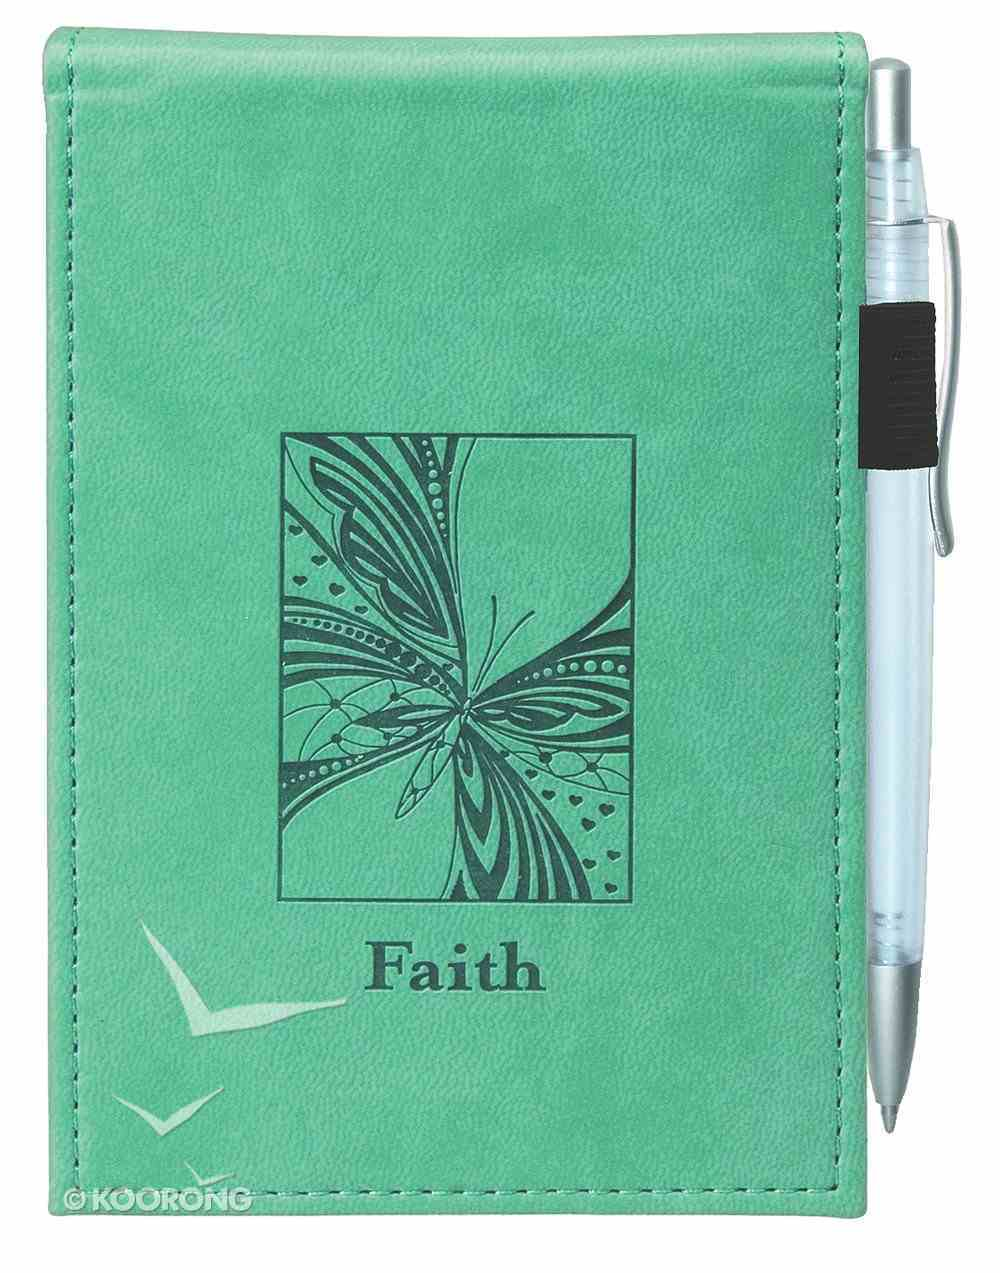 Pocket Notepad With Pen: Faith Luxleather Imitation Leather